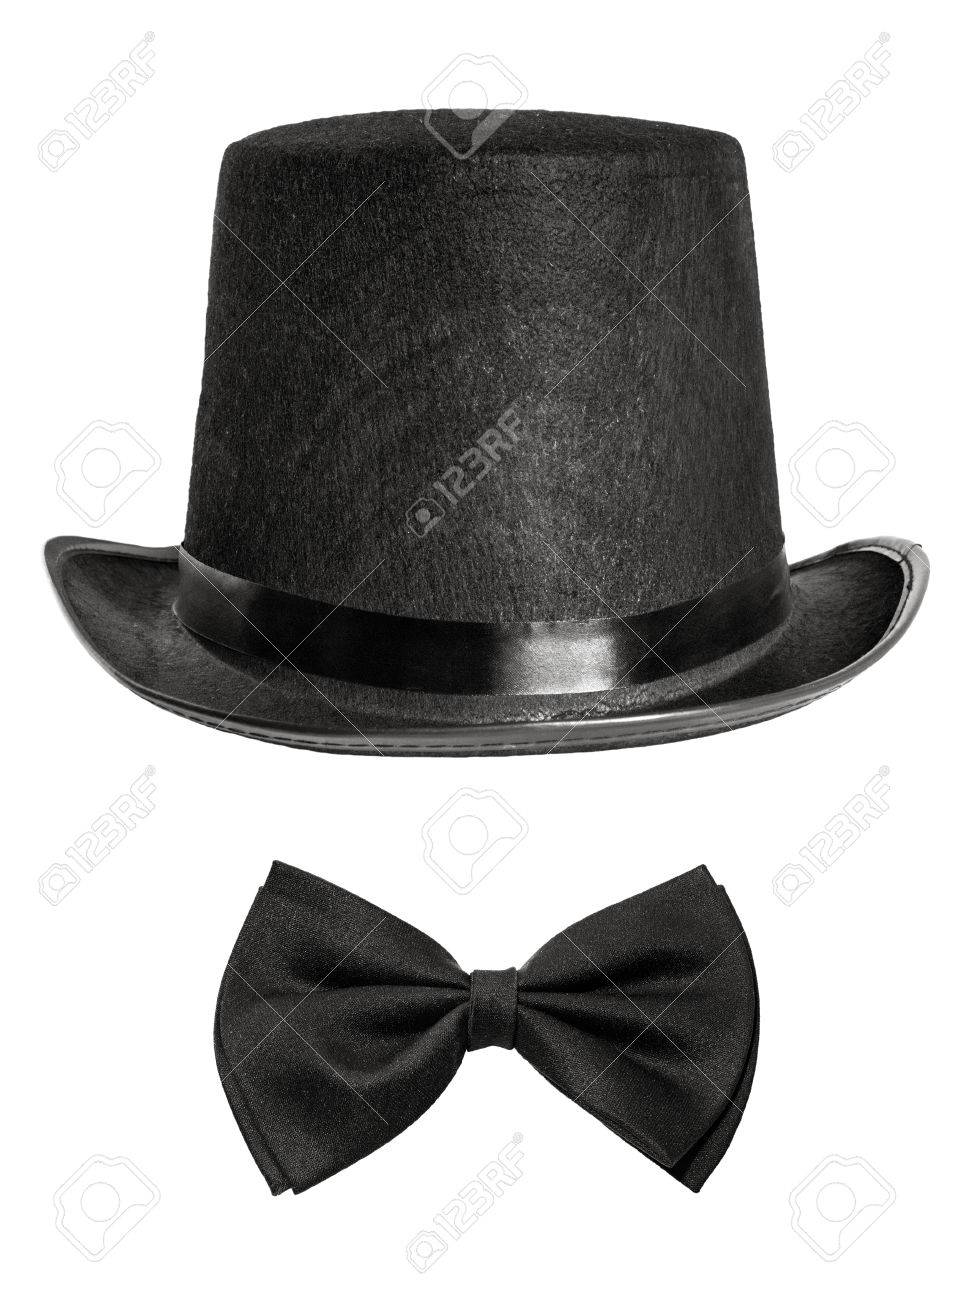 b74e87682db black felt hat and bow tie isolated on white background. front view Stock  Photo -